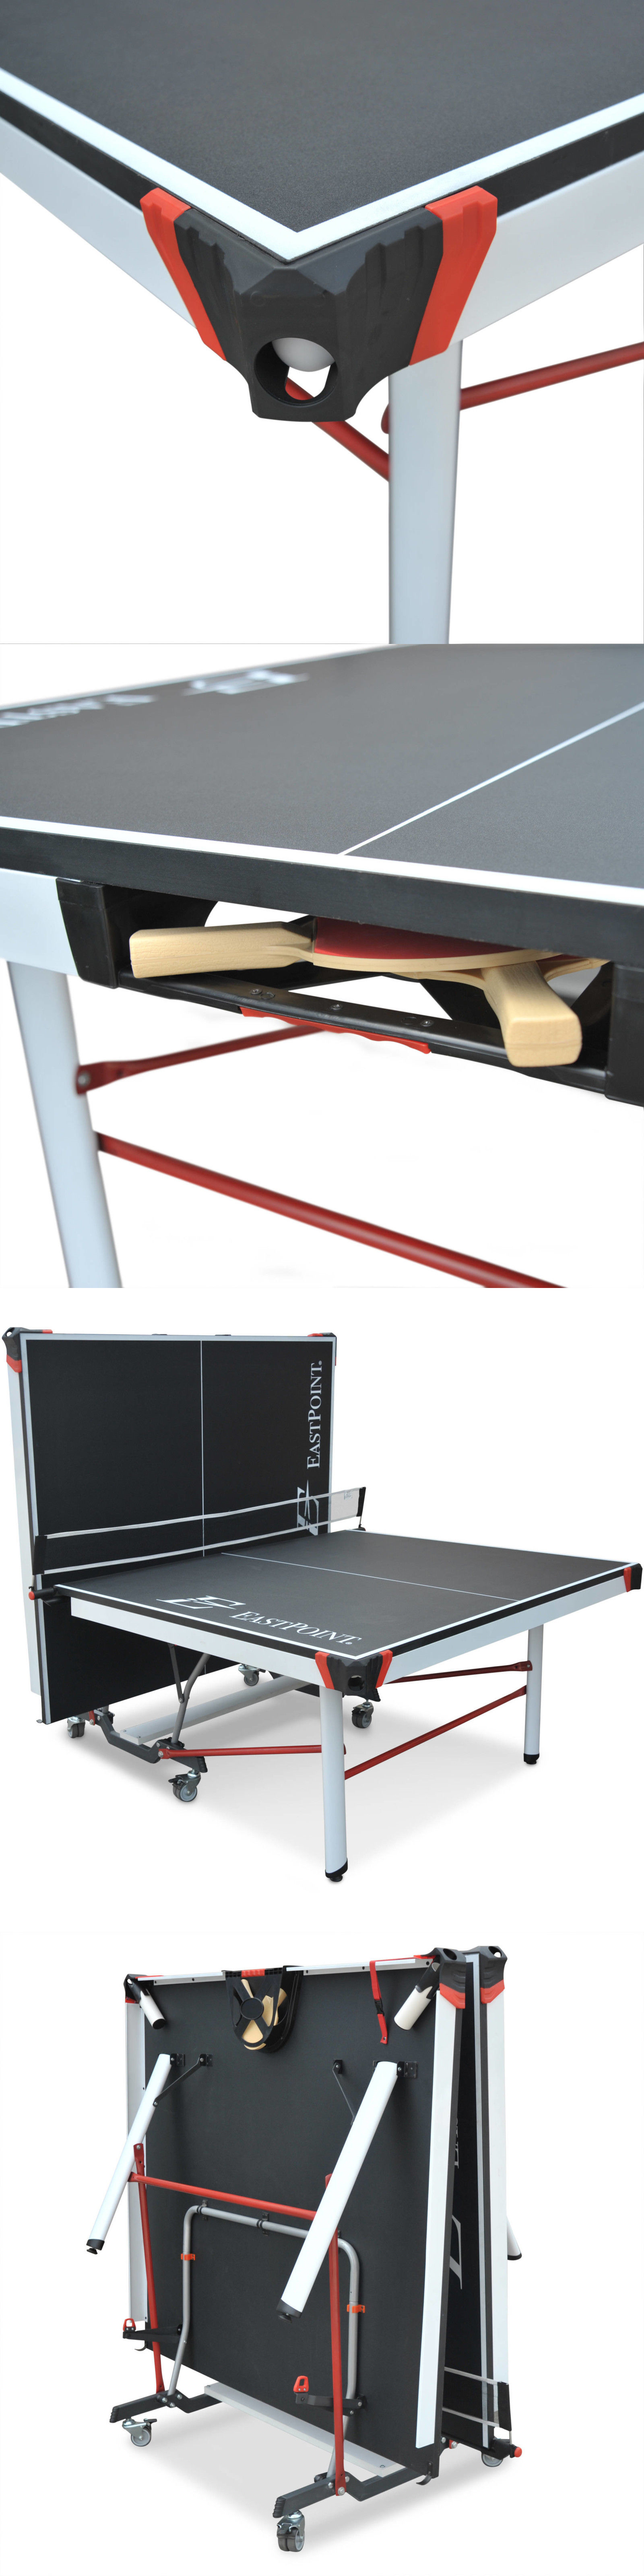 Sets 158955: Eastpoint Sports Eps 5000 2 Piece Table Tennis Table   25Mm Top